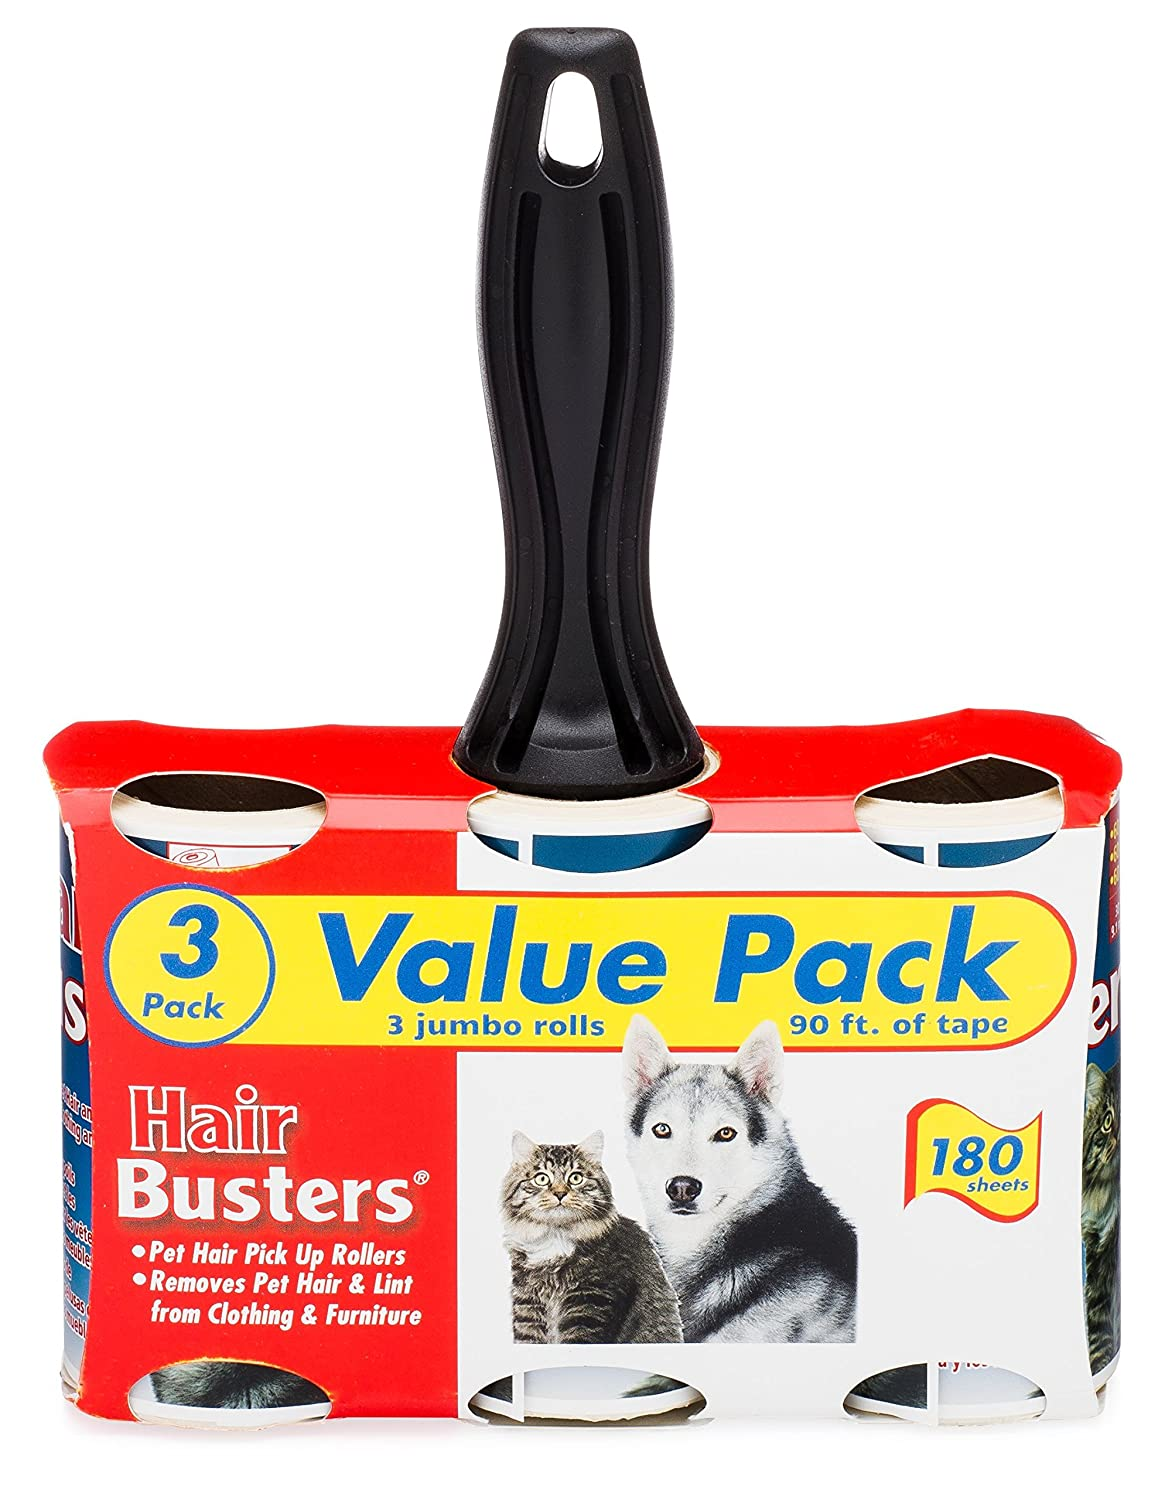 Extra Sticky Pet Hair Rollers Hair Busters by Erasmus Pets Lint Roller Value Pack 3 Rolls 60 Sheets Per Roll